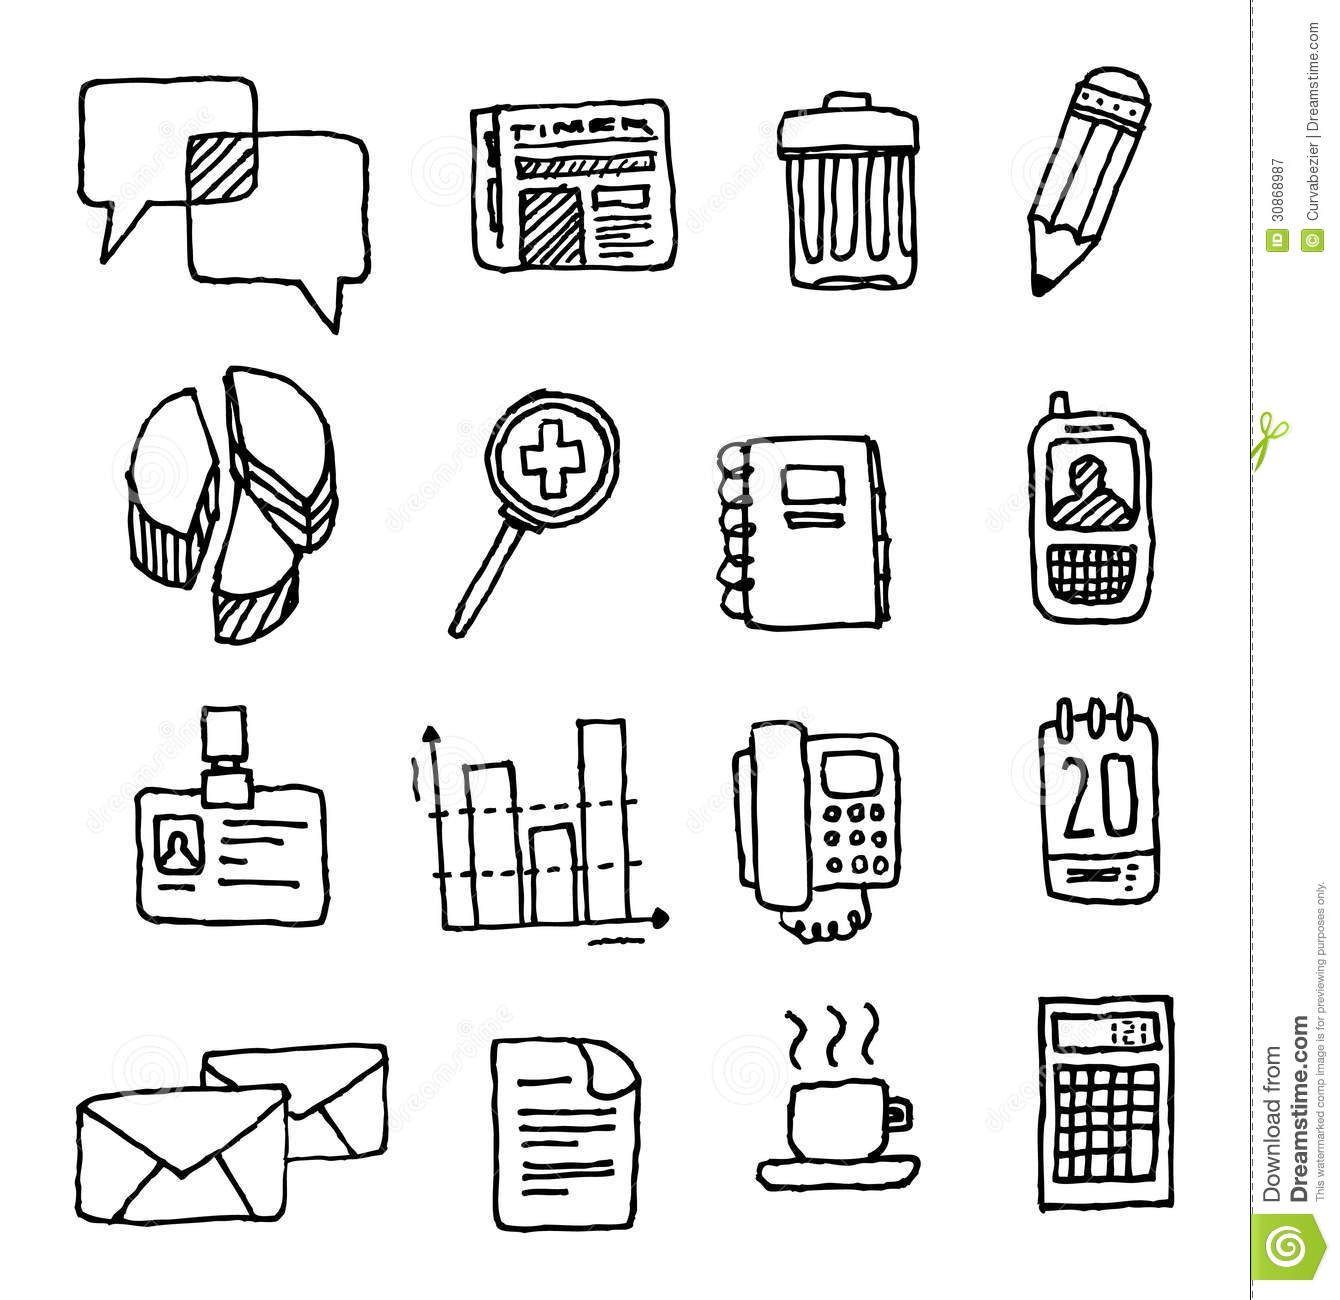 Black and White Business Office Icons Free